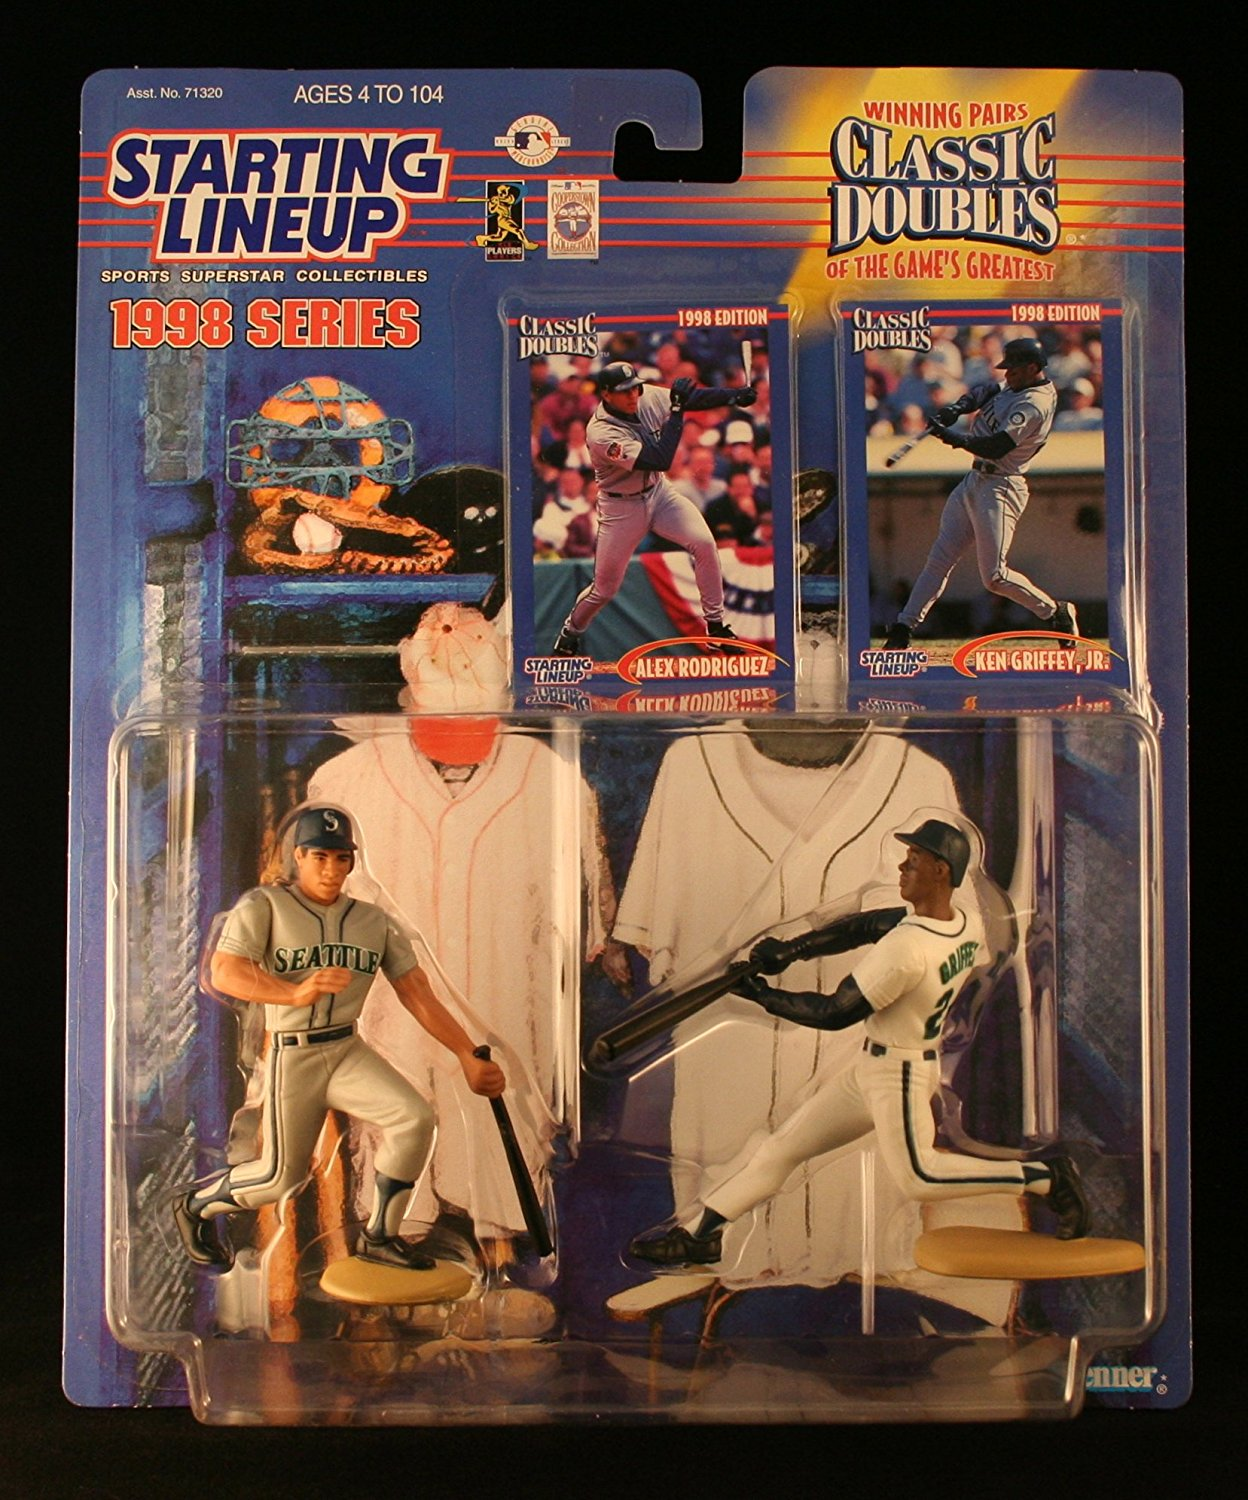 ALEX RODRIGUEZ / SEATTLE MARINERS & KEN GRIFFEY JR. / SEATTLE MARINERS 1998 MLB Classic Doubles * Winning Pairs Series * Starting Lineup Action Figures & Exclusive Collector Trading Cards